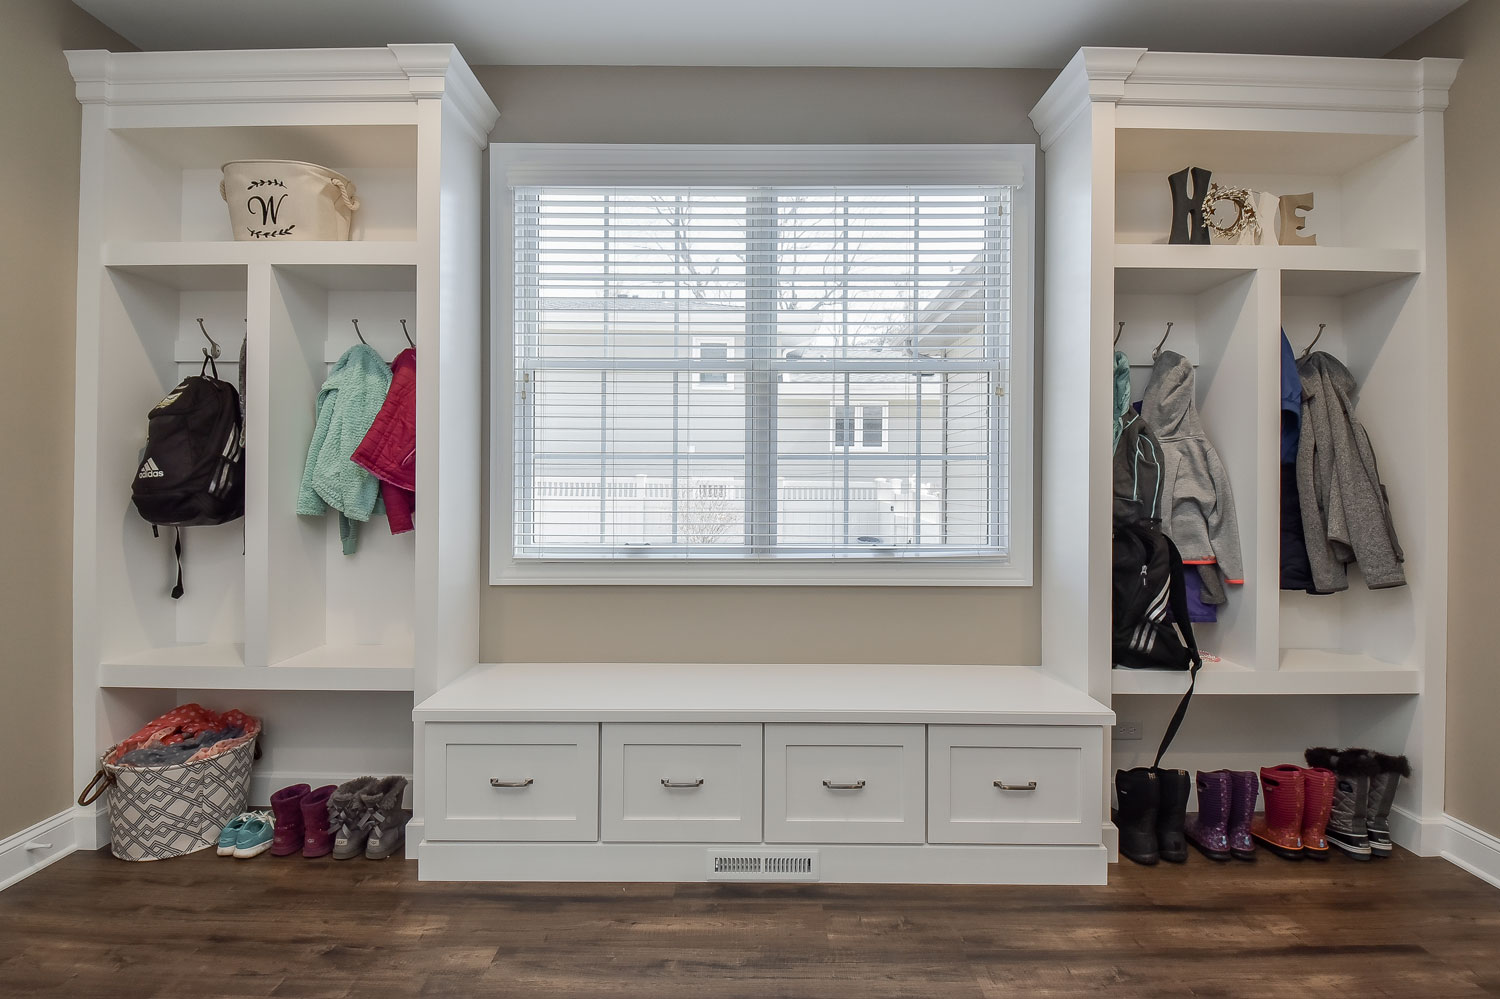 Downers Grove White Mudroom Cabinetry Lockers - Sebring Design Build